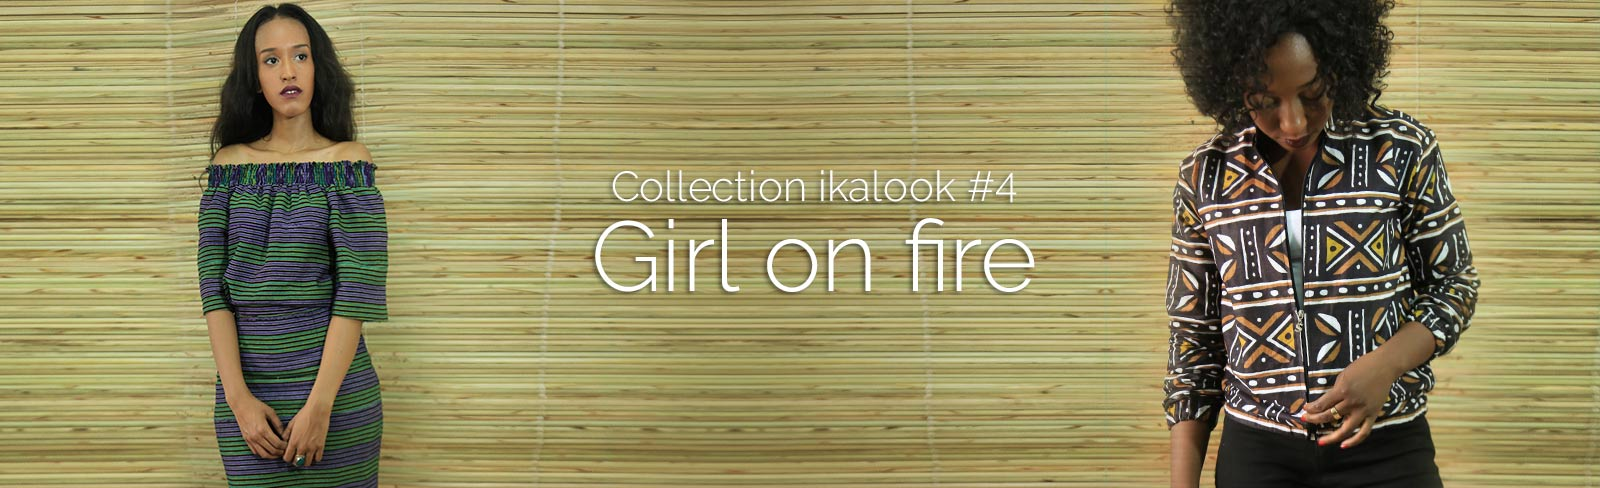 Img-Collections-Slides-girl-on-fire-New